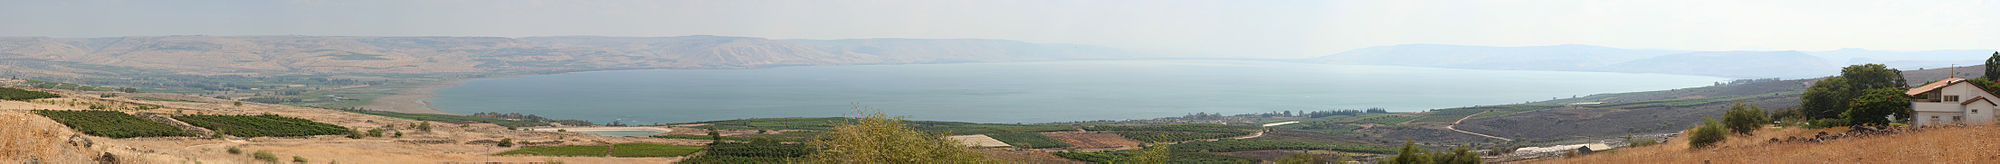 Sea of Galilee (panoramic view, ca. 2006).jpg